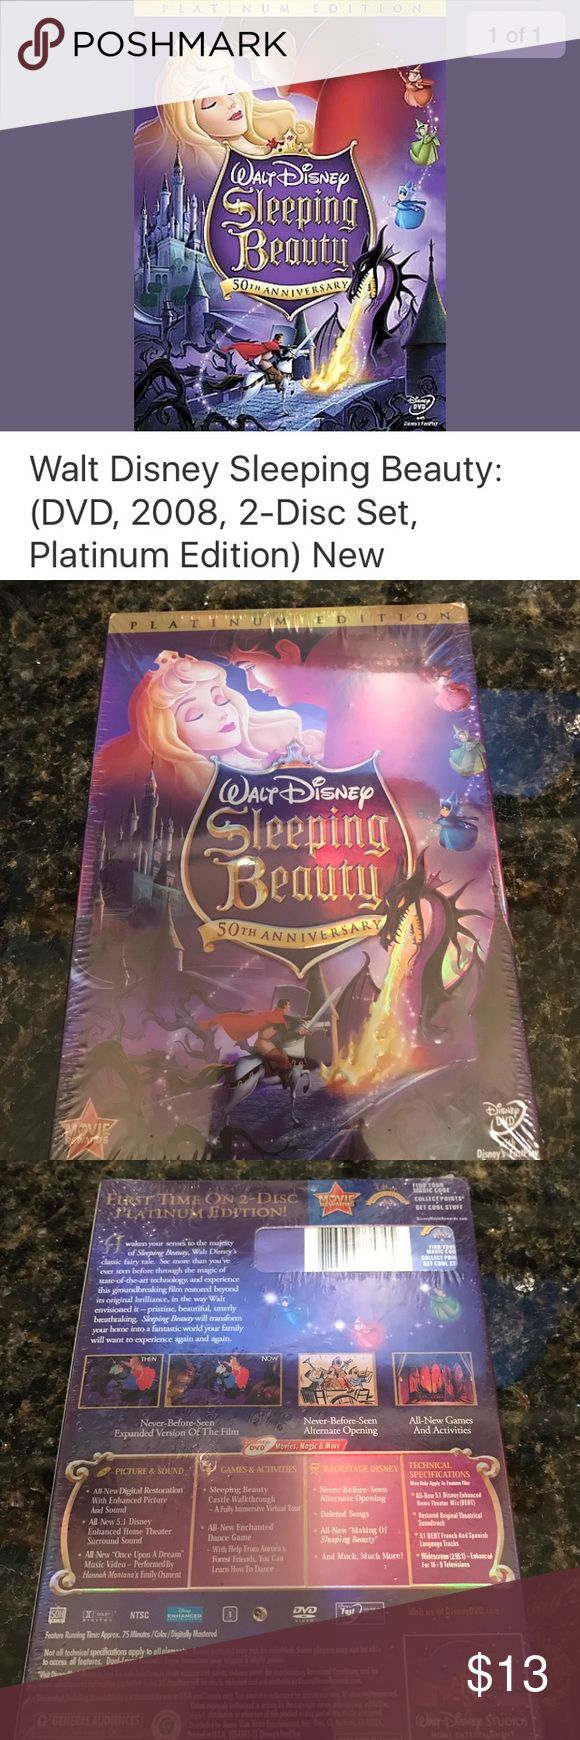 "Sleeping Beauty, Platinum Edition 2 Disk DVD. NWT! One of Walt Disney's celebrated classics - the ""Sleeping Beauty"" movie is now available on this two-disc set. Digitally restored in HD, this two-disc set revives the film in full glory. Moreover, the soundtrack of this animated classic has been reproduced in Dolby Digital surround sound especially for this DVD. You can also enjoy a never-before-seen alternate opening, a castle walk-through, and a music video on this DVD of the children's…"